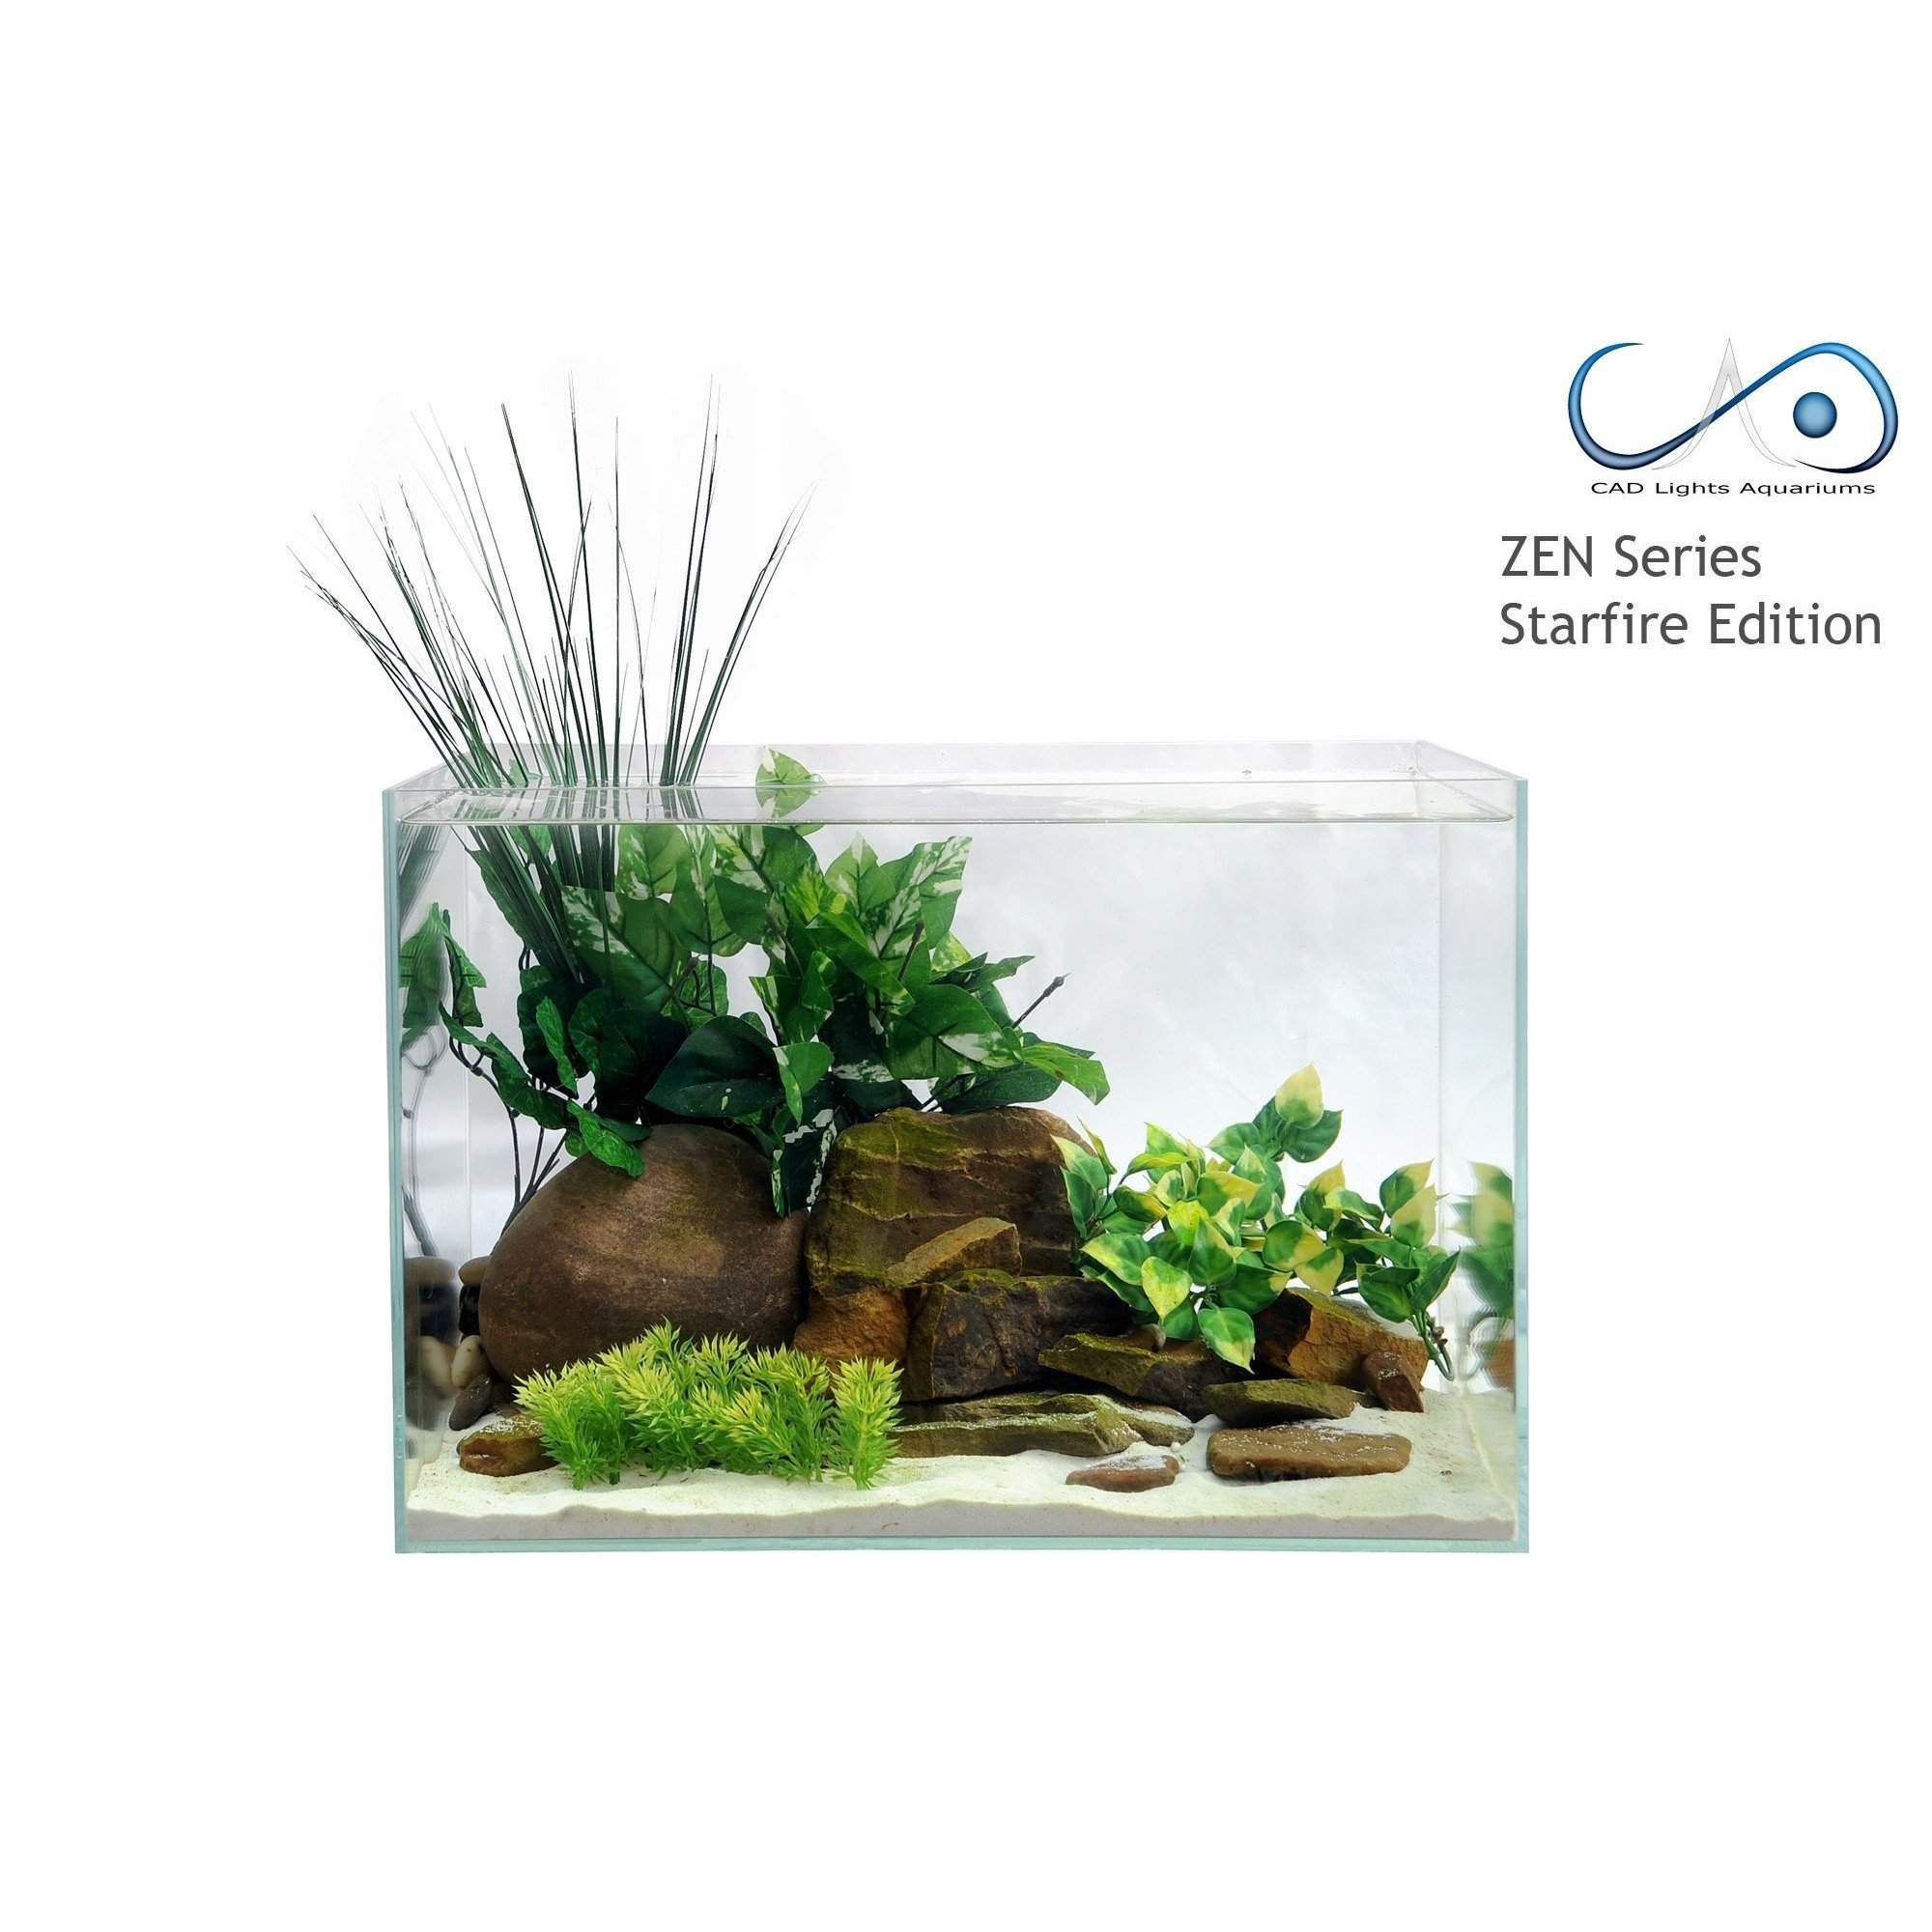 3 Gallon Zen Series Ultra Clear Low-iron Glass Aquarium - Rimless Aquarium - Aquarium Creation